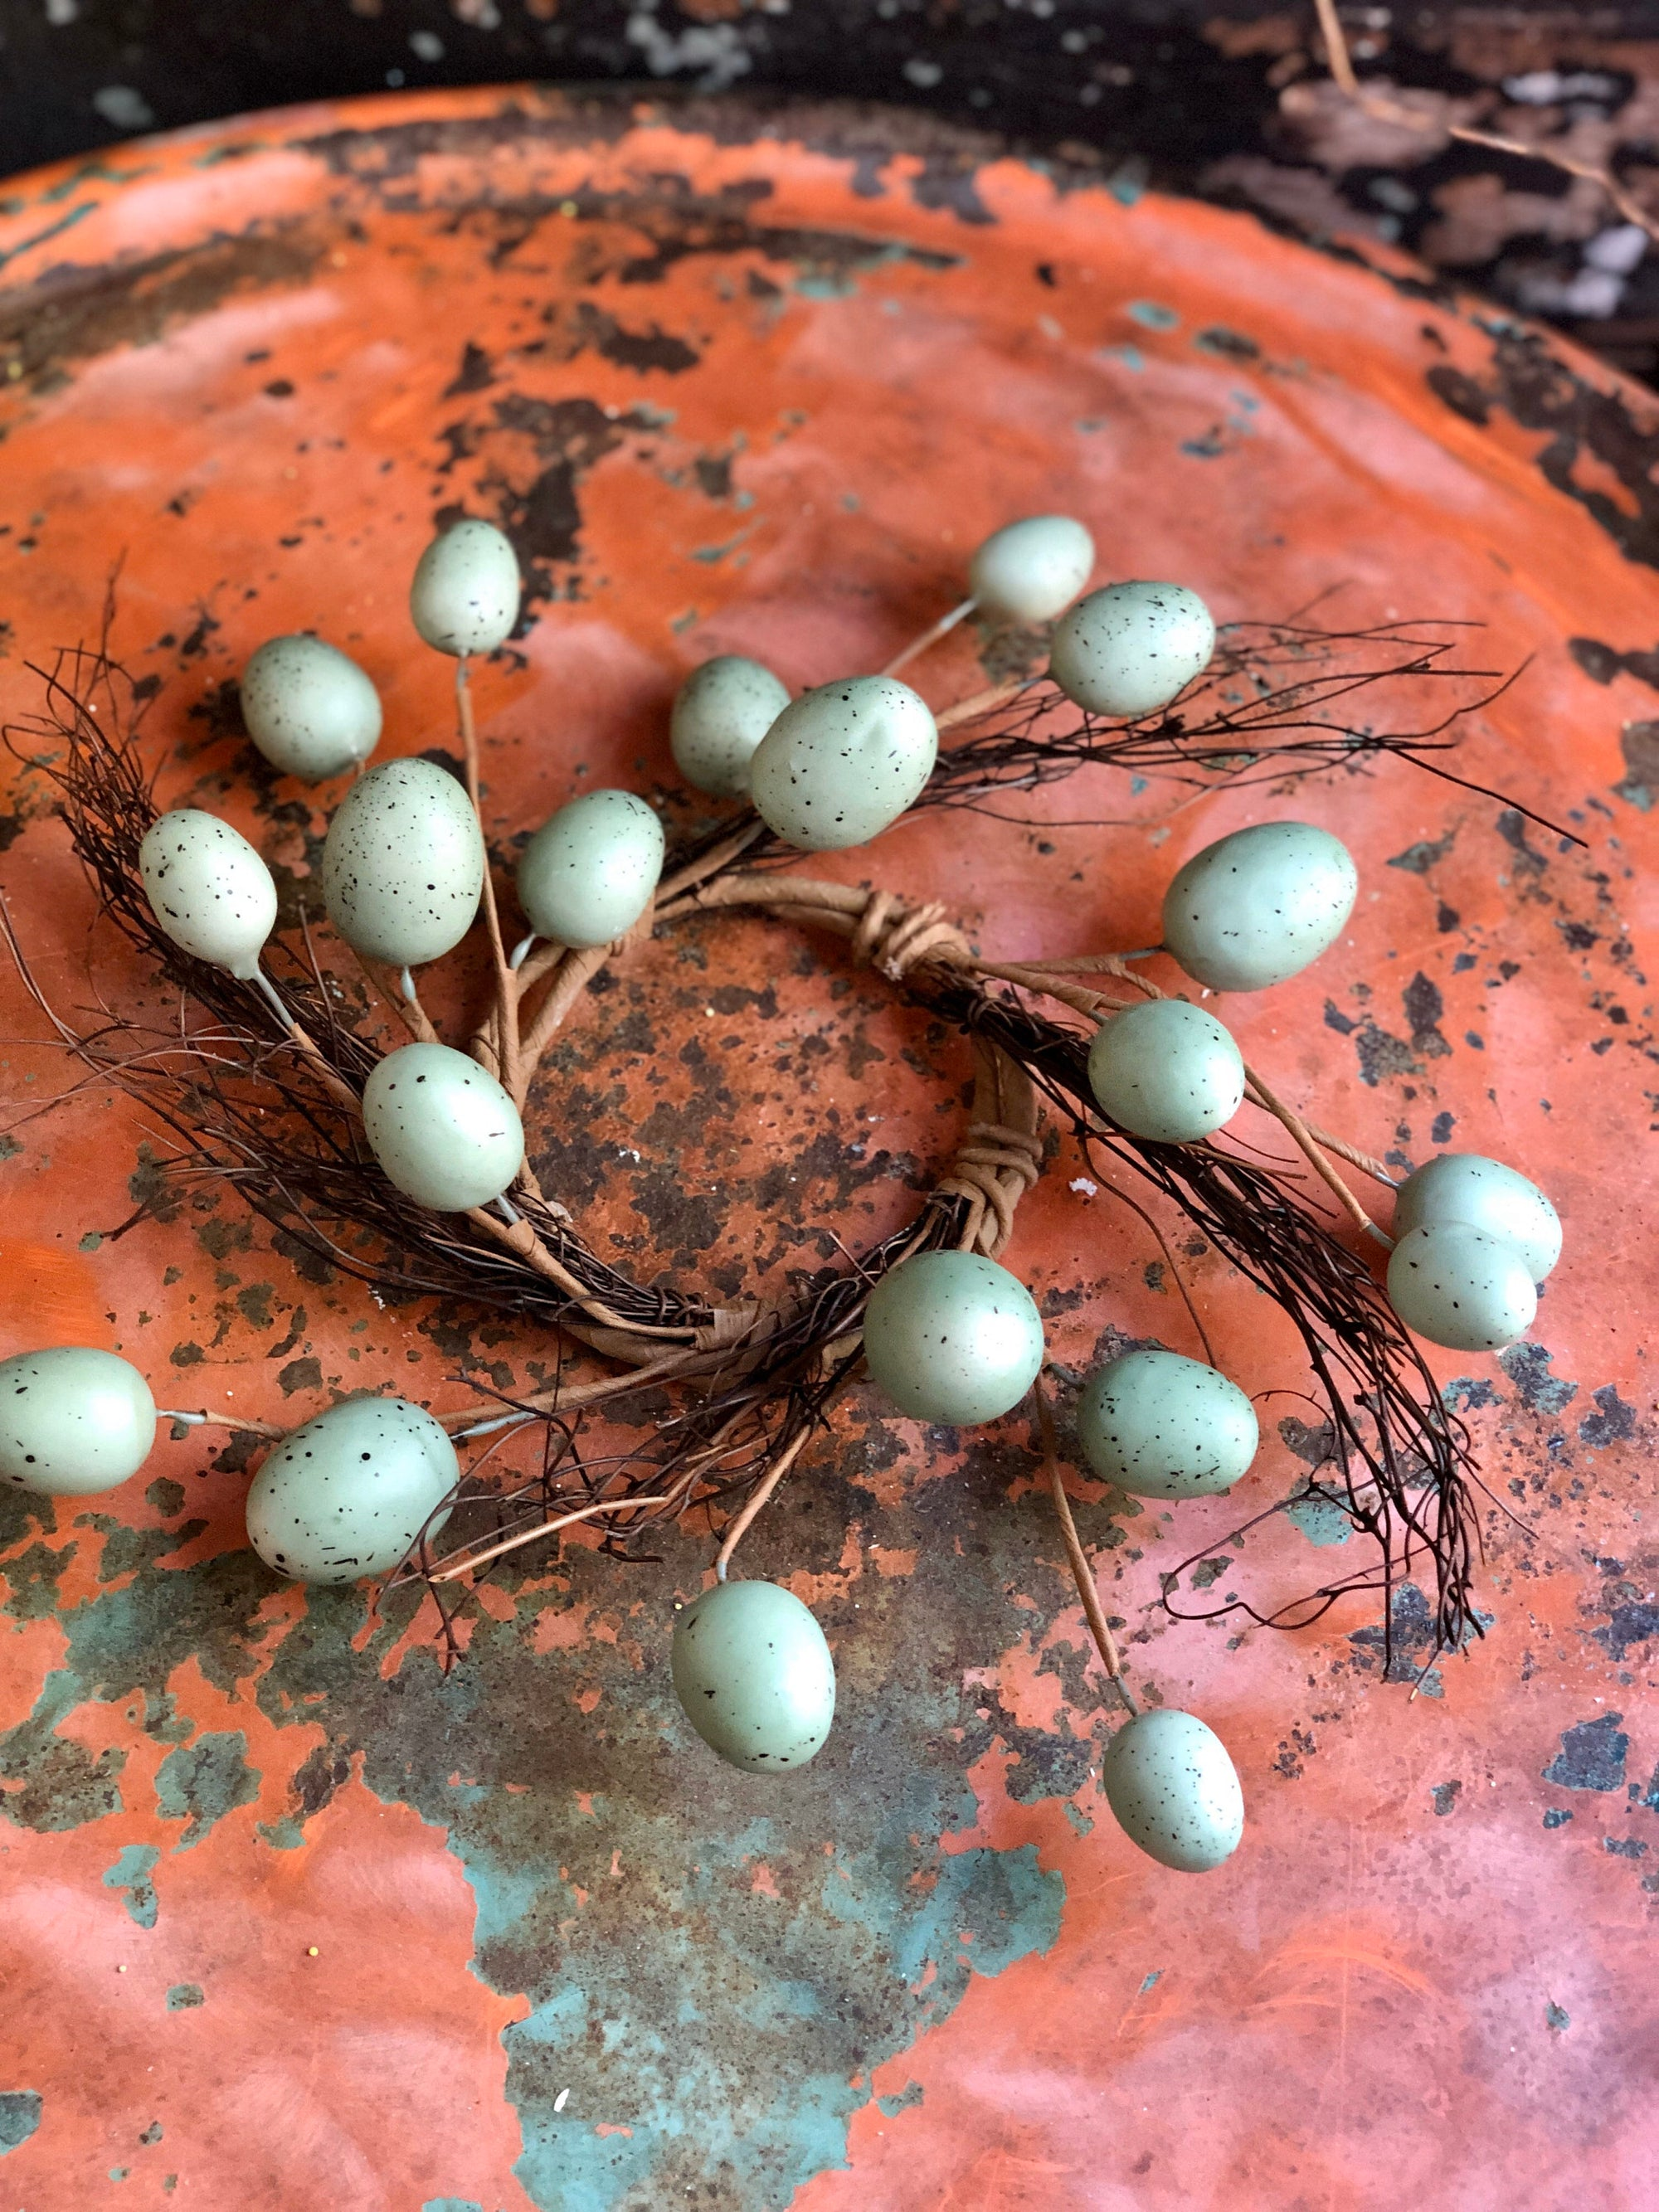 Robins Egg Candle Ring, Easter egg candle ring, easter decor, spring decor, mantle decor, home decor, primitive candle ring, cottage decor